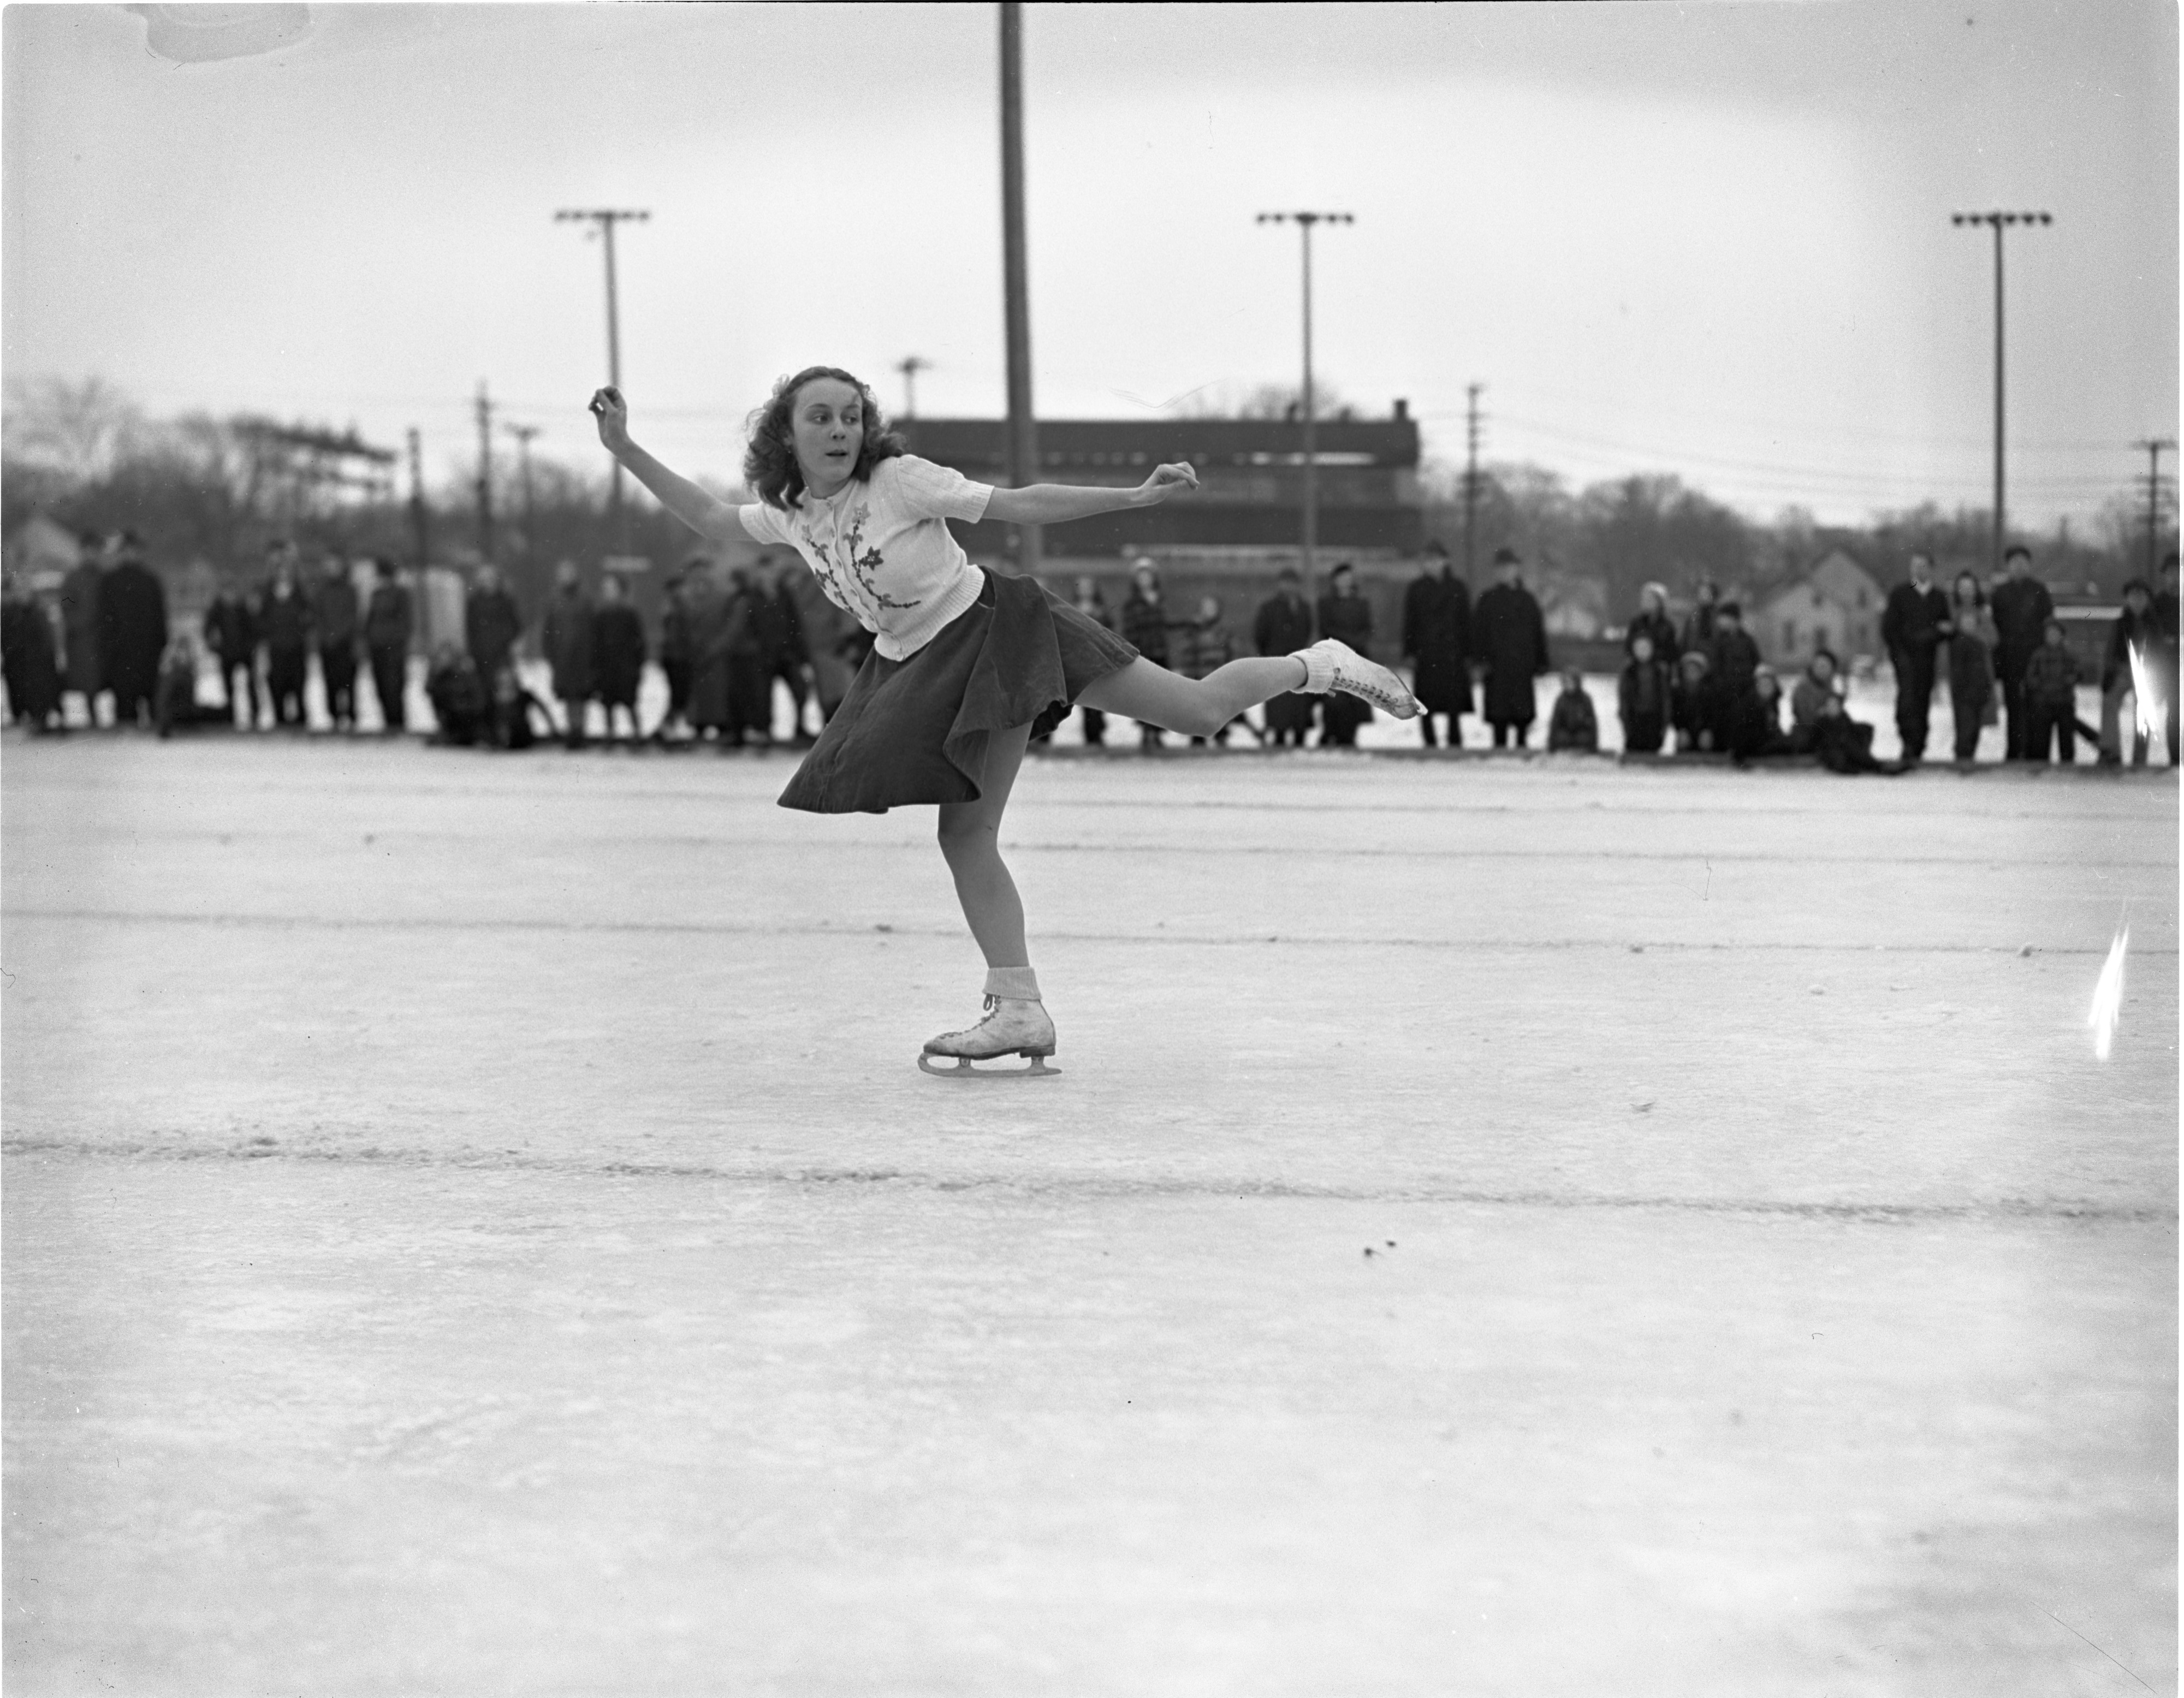 Nancy Upson Competes At The City Skating Carnival, January 1939 image